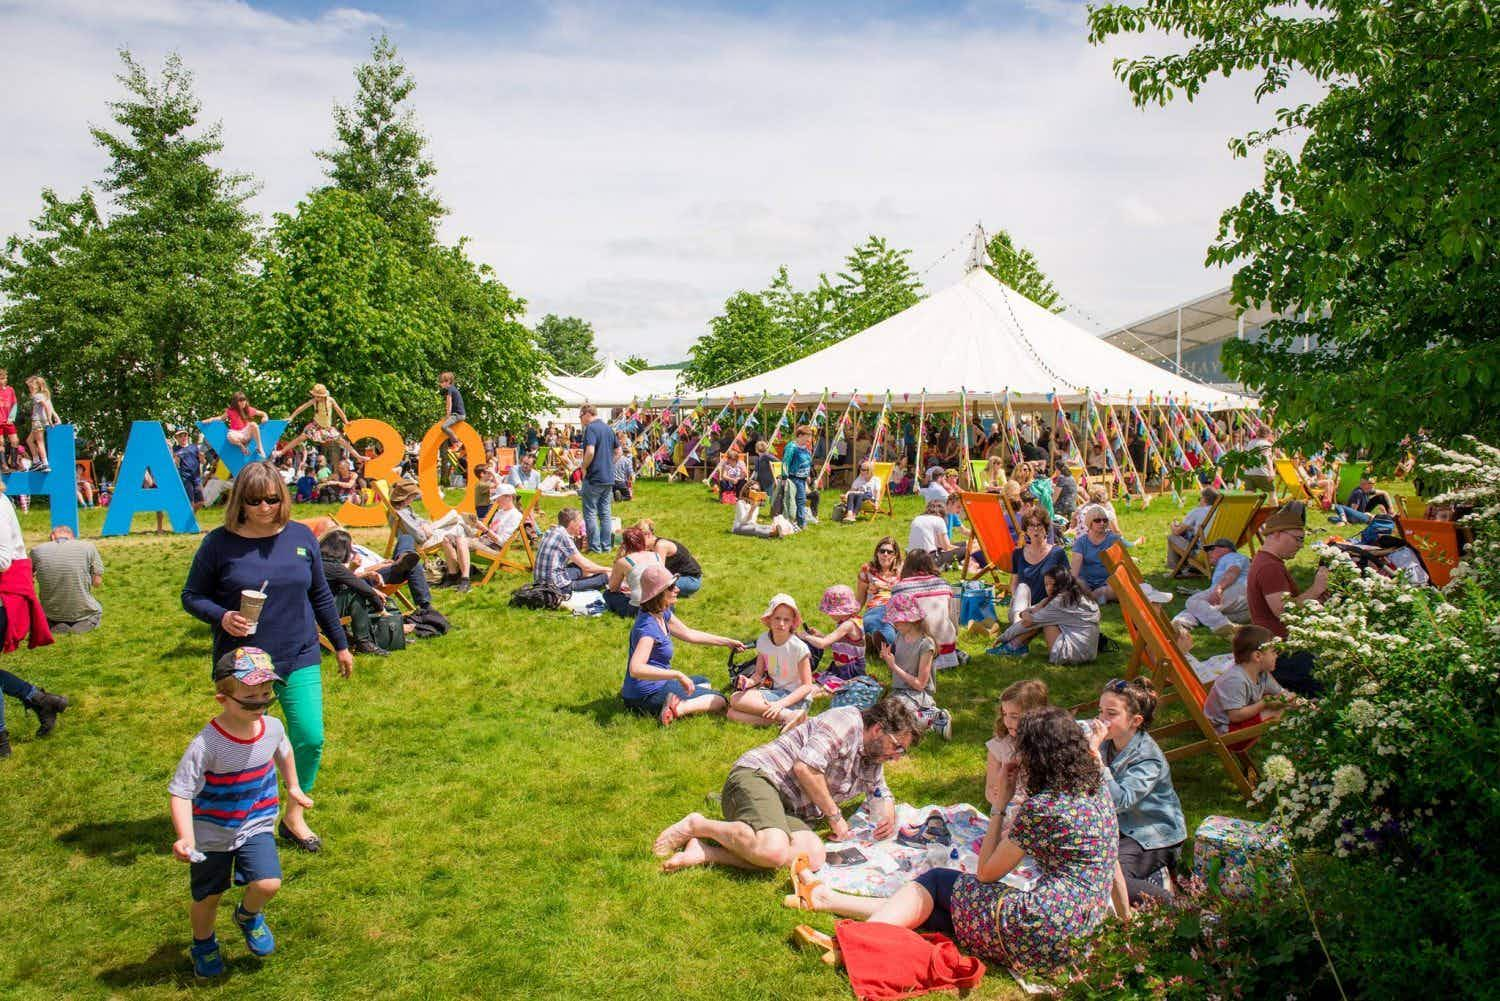 From Denmark to Colombia: the iconic Hay Festival celebrates 30th anniversary by going global